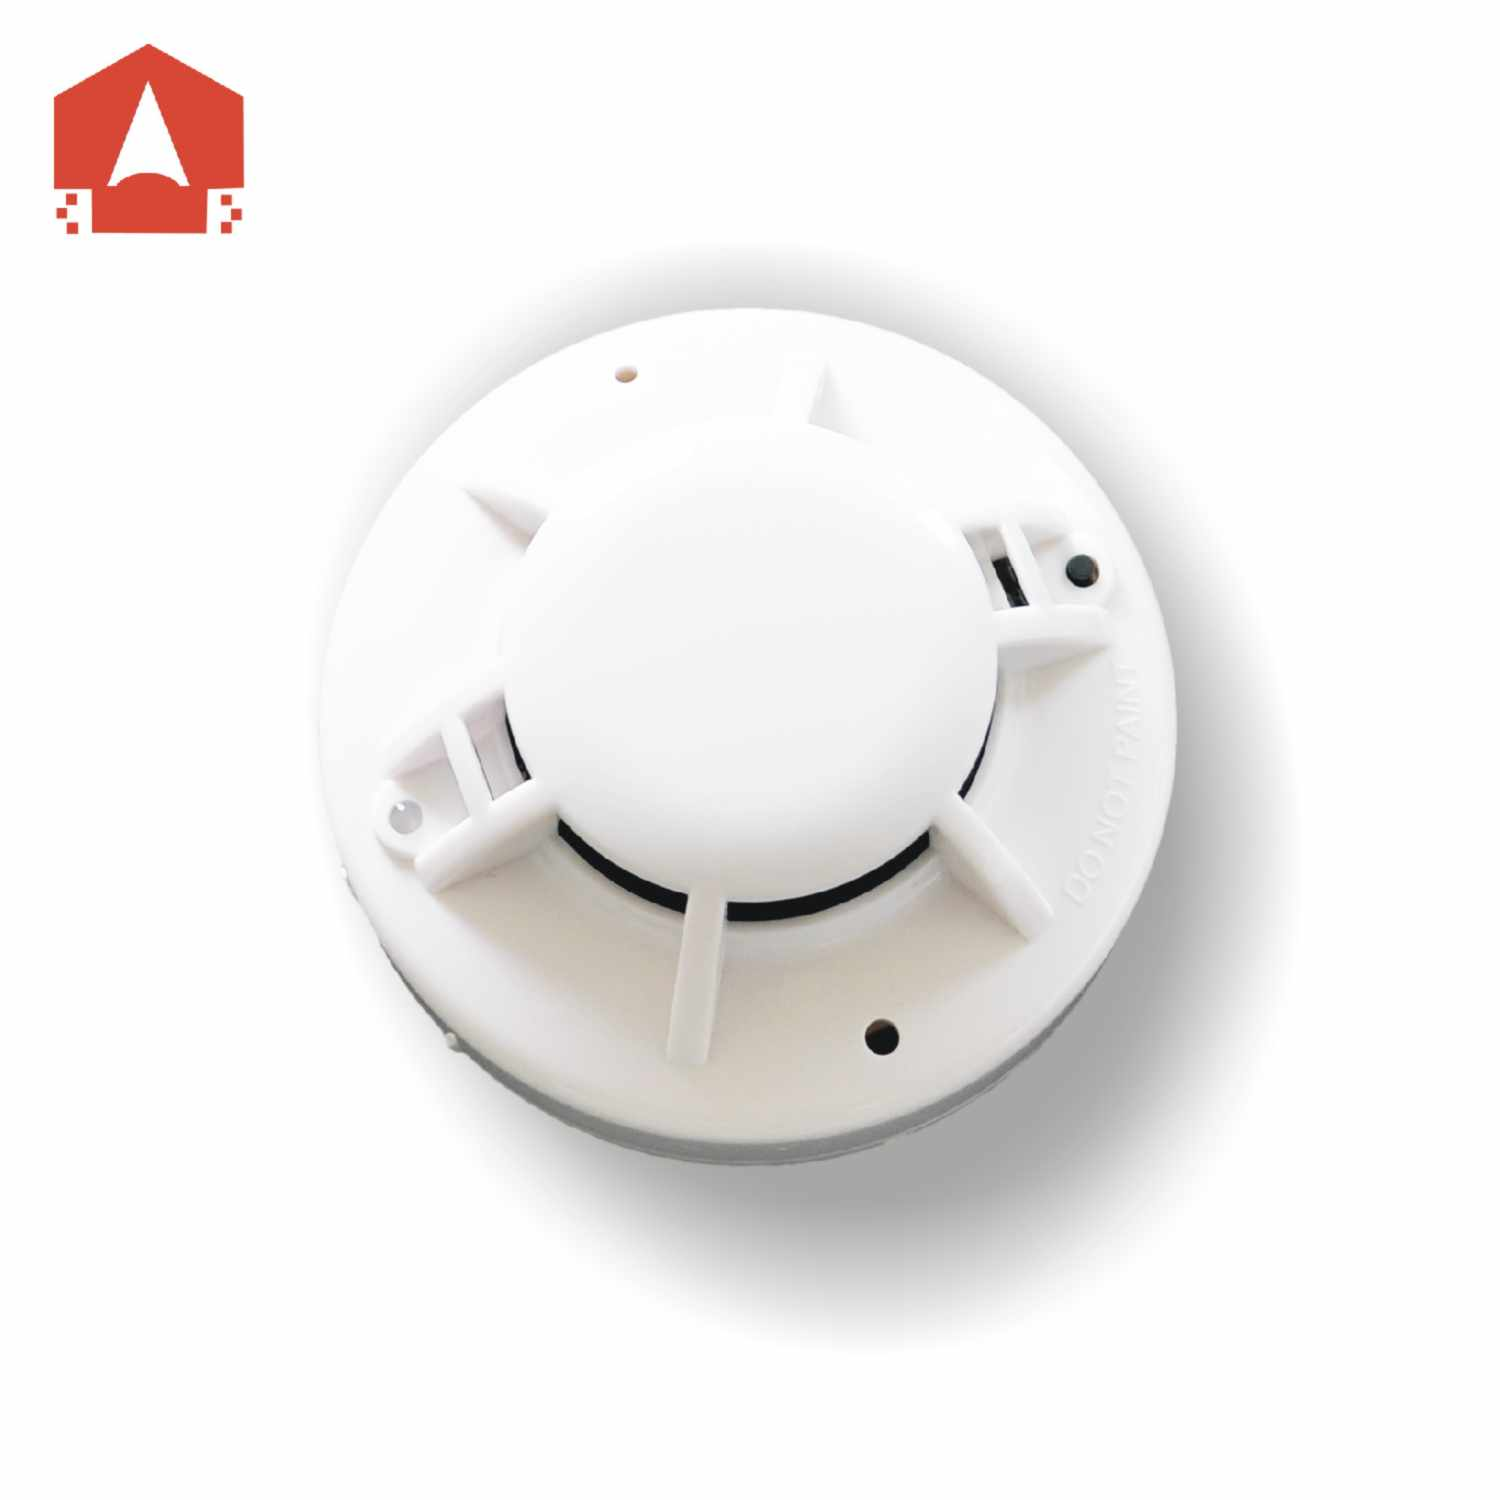 hight resolution of 4 wire smoke detector with relay output yt142